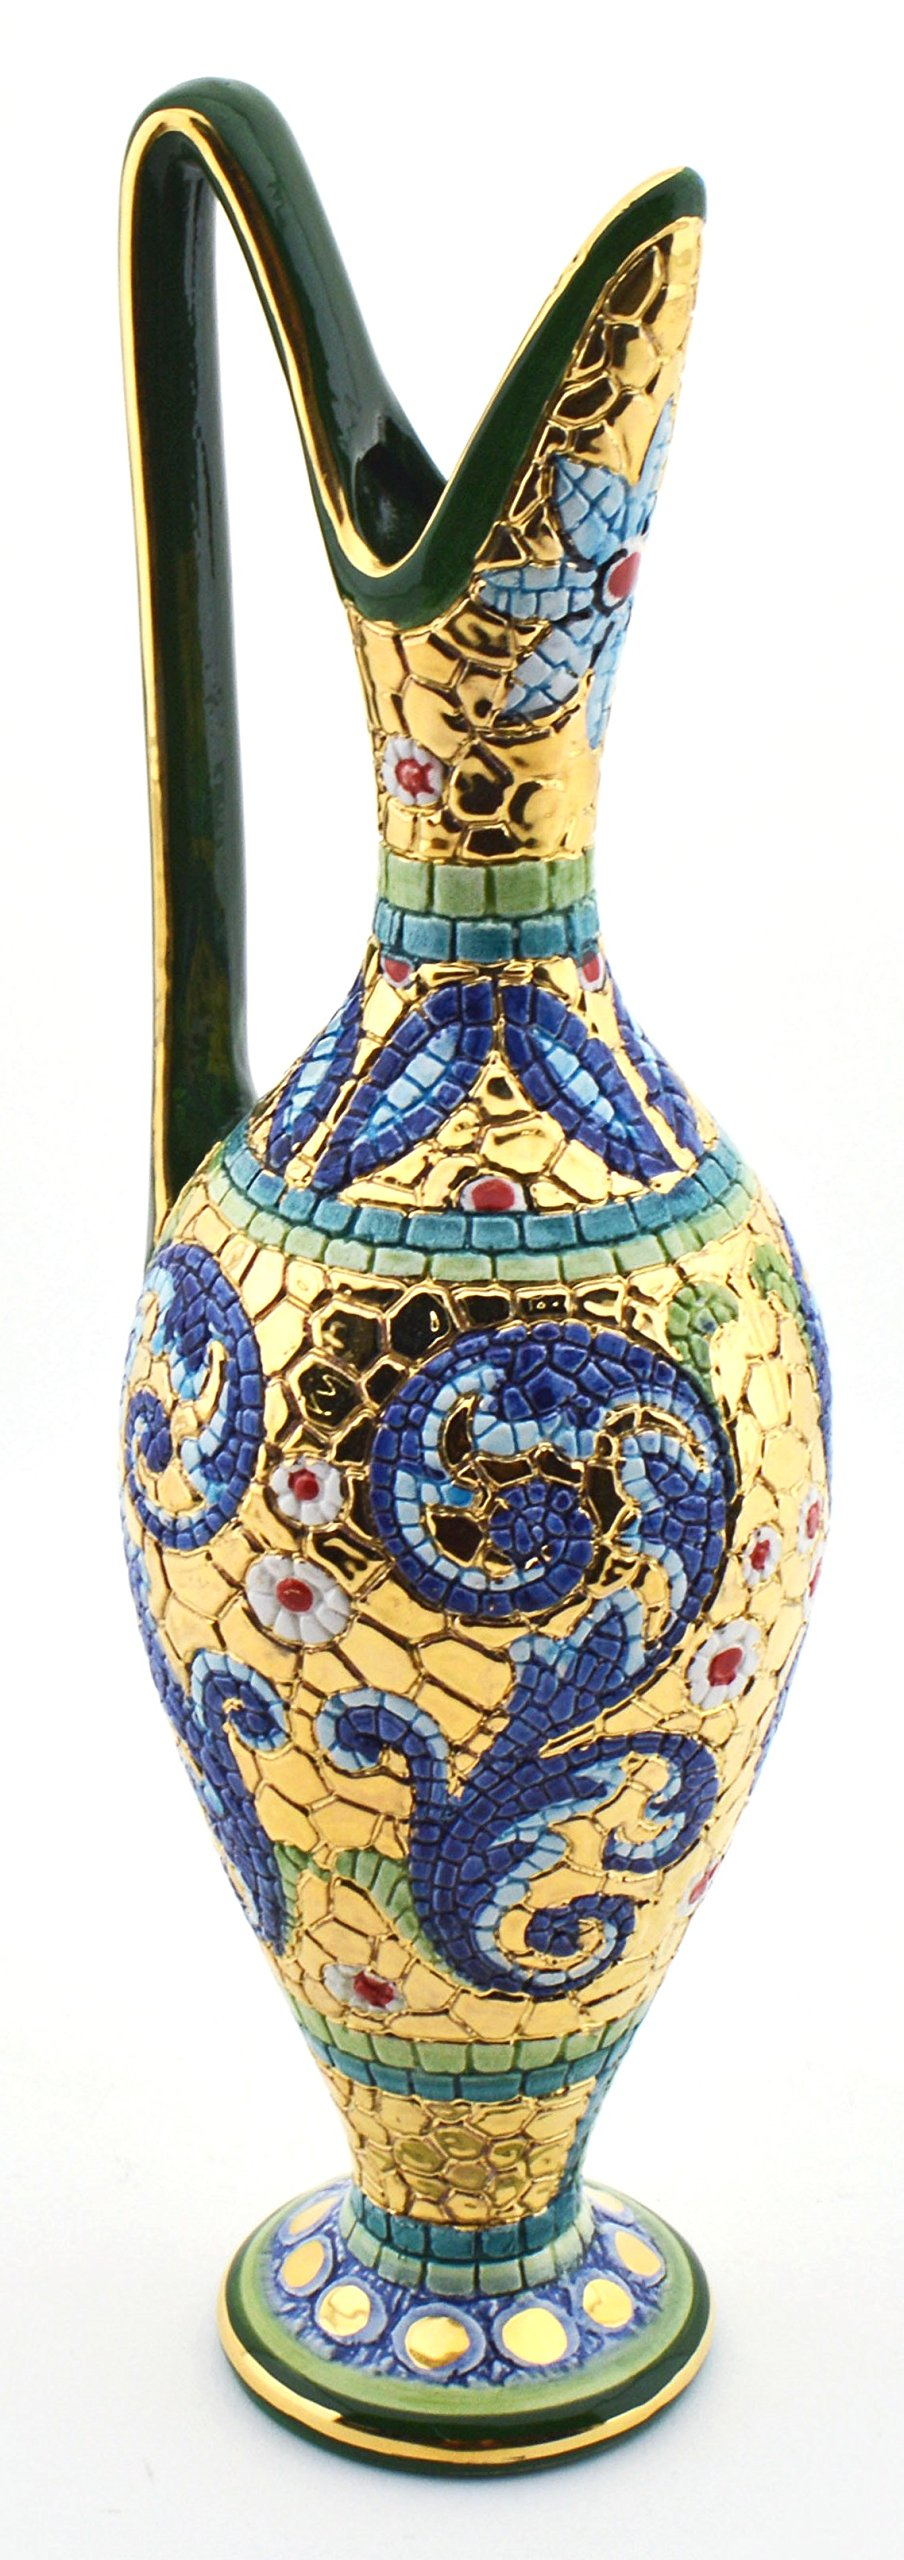 ART ESCUDELLERS Cermic multicolored JUG handpainted with 24K GOLD, decorated in BYZANTINE GREEN style. 3,15'' x 3,15'' x 10,63''